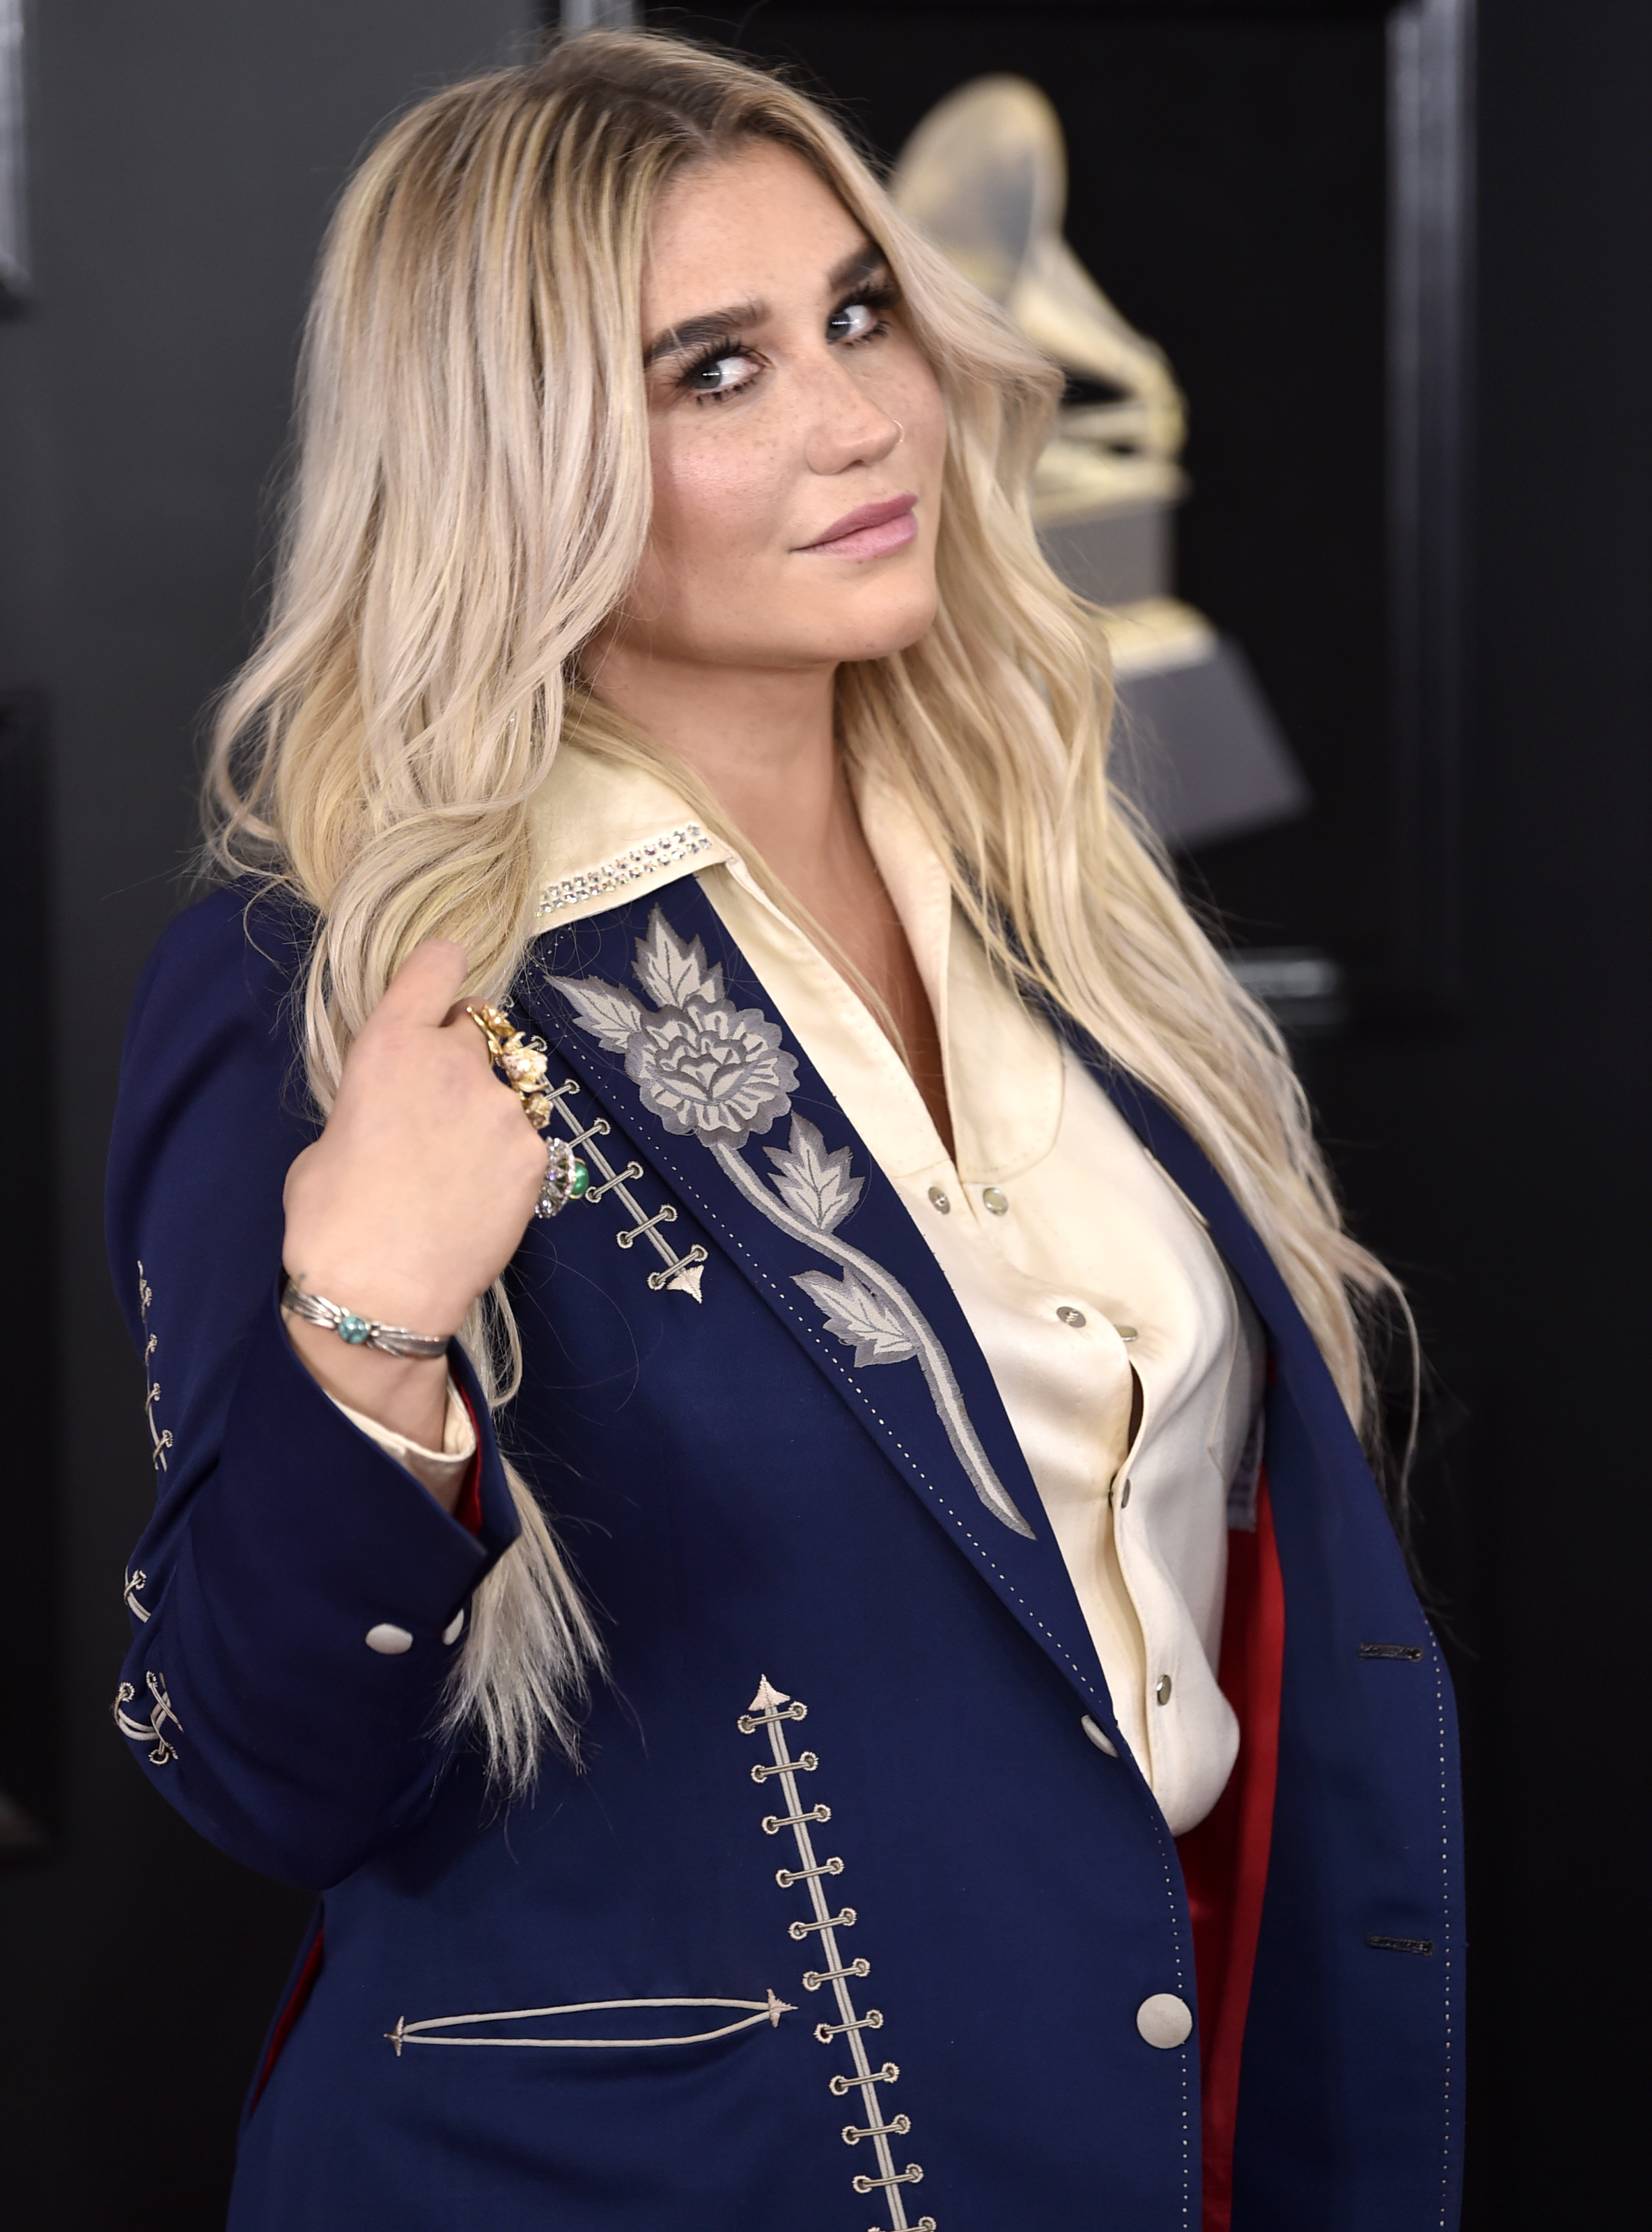 <div class='meta'><div class='origin-logo' data-origin='AP'></div><span class='caption-text' data-credit='Evan Agostini/Invision/AP'>Kesha arrives at the 60th annual Grammy Awards at Madison Square Garden on Sunday, Jan. 28, 2018, in New York.</span></div>